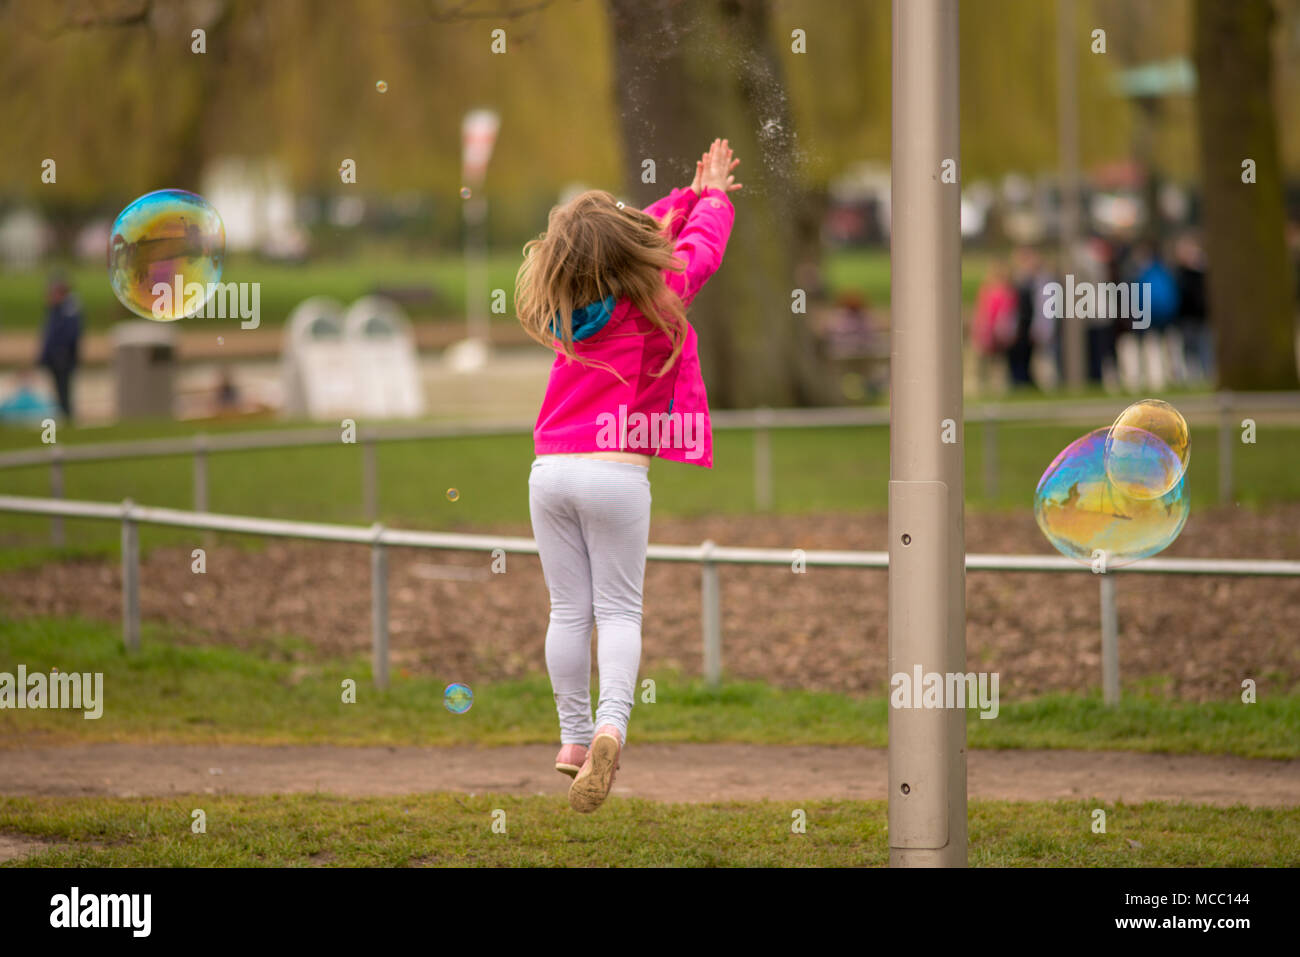 Young child jumps in the air and bursts a soap bubble caught at the exact moment it explodes - Stock Image